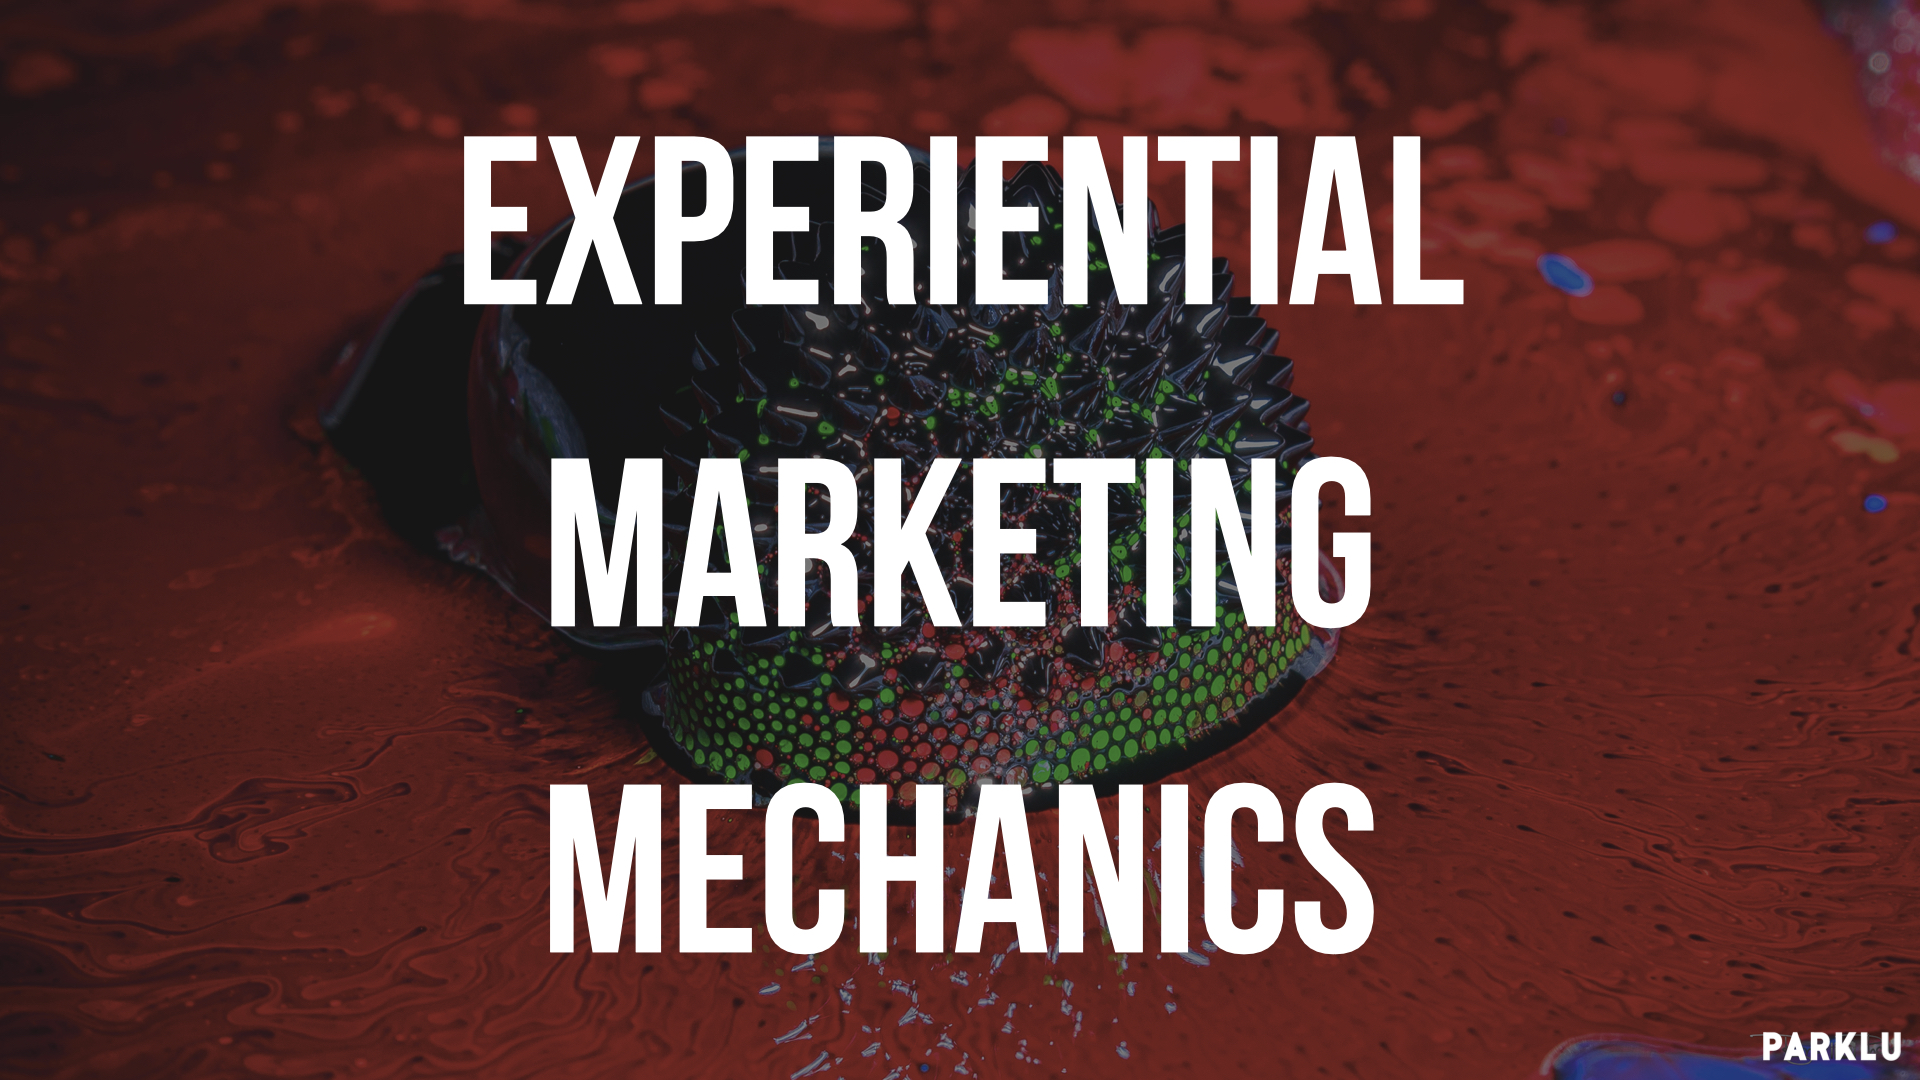 Experiential Marketing Mechanics Turning Customers into KOC